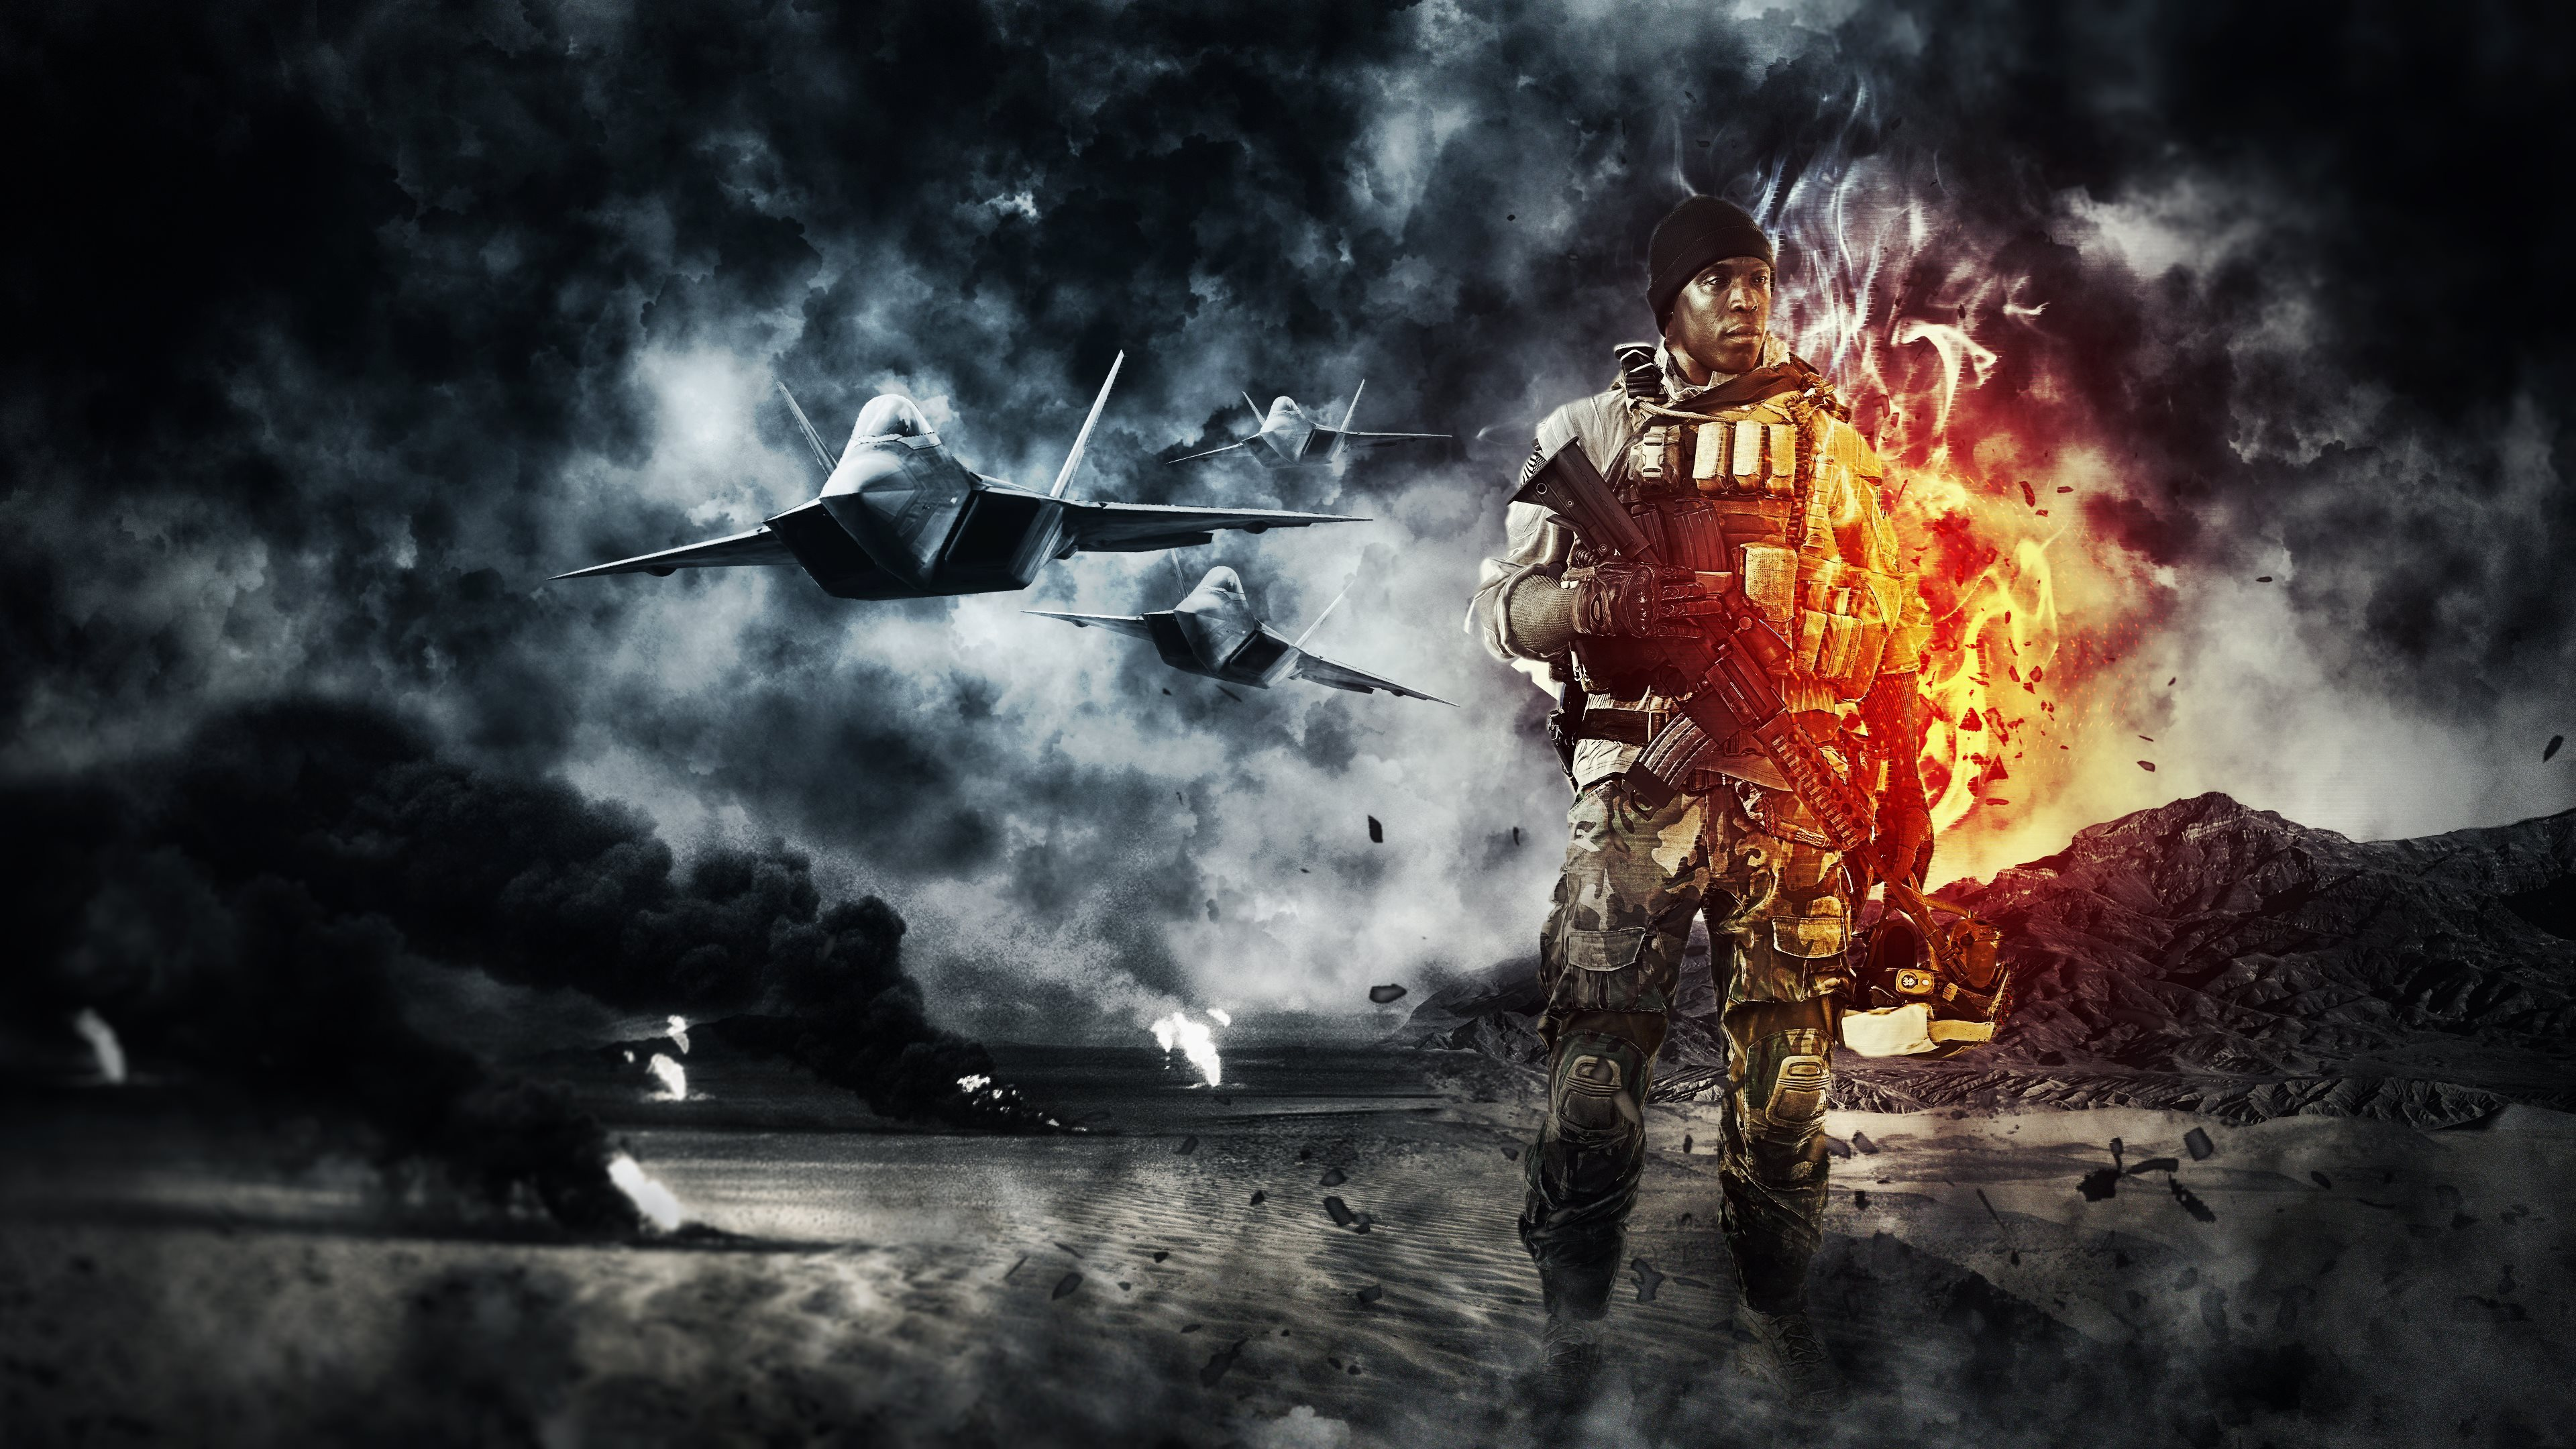 Battlefield Wallpaper Wallpapers High Quality Download Free